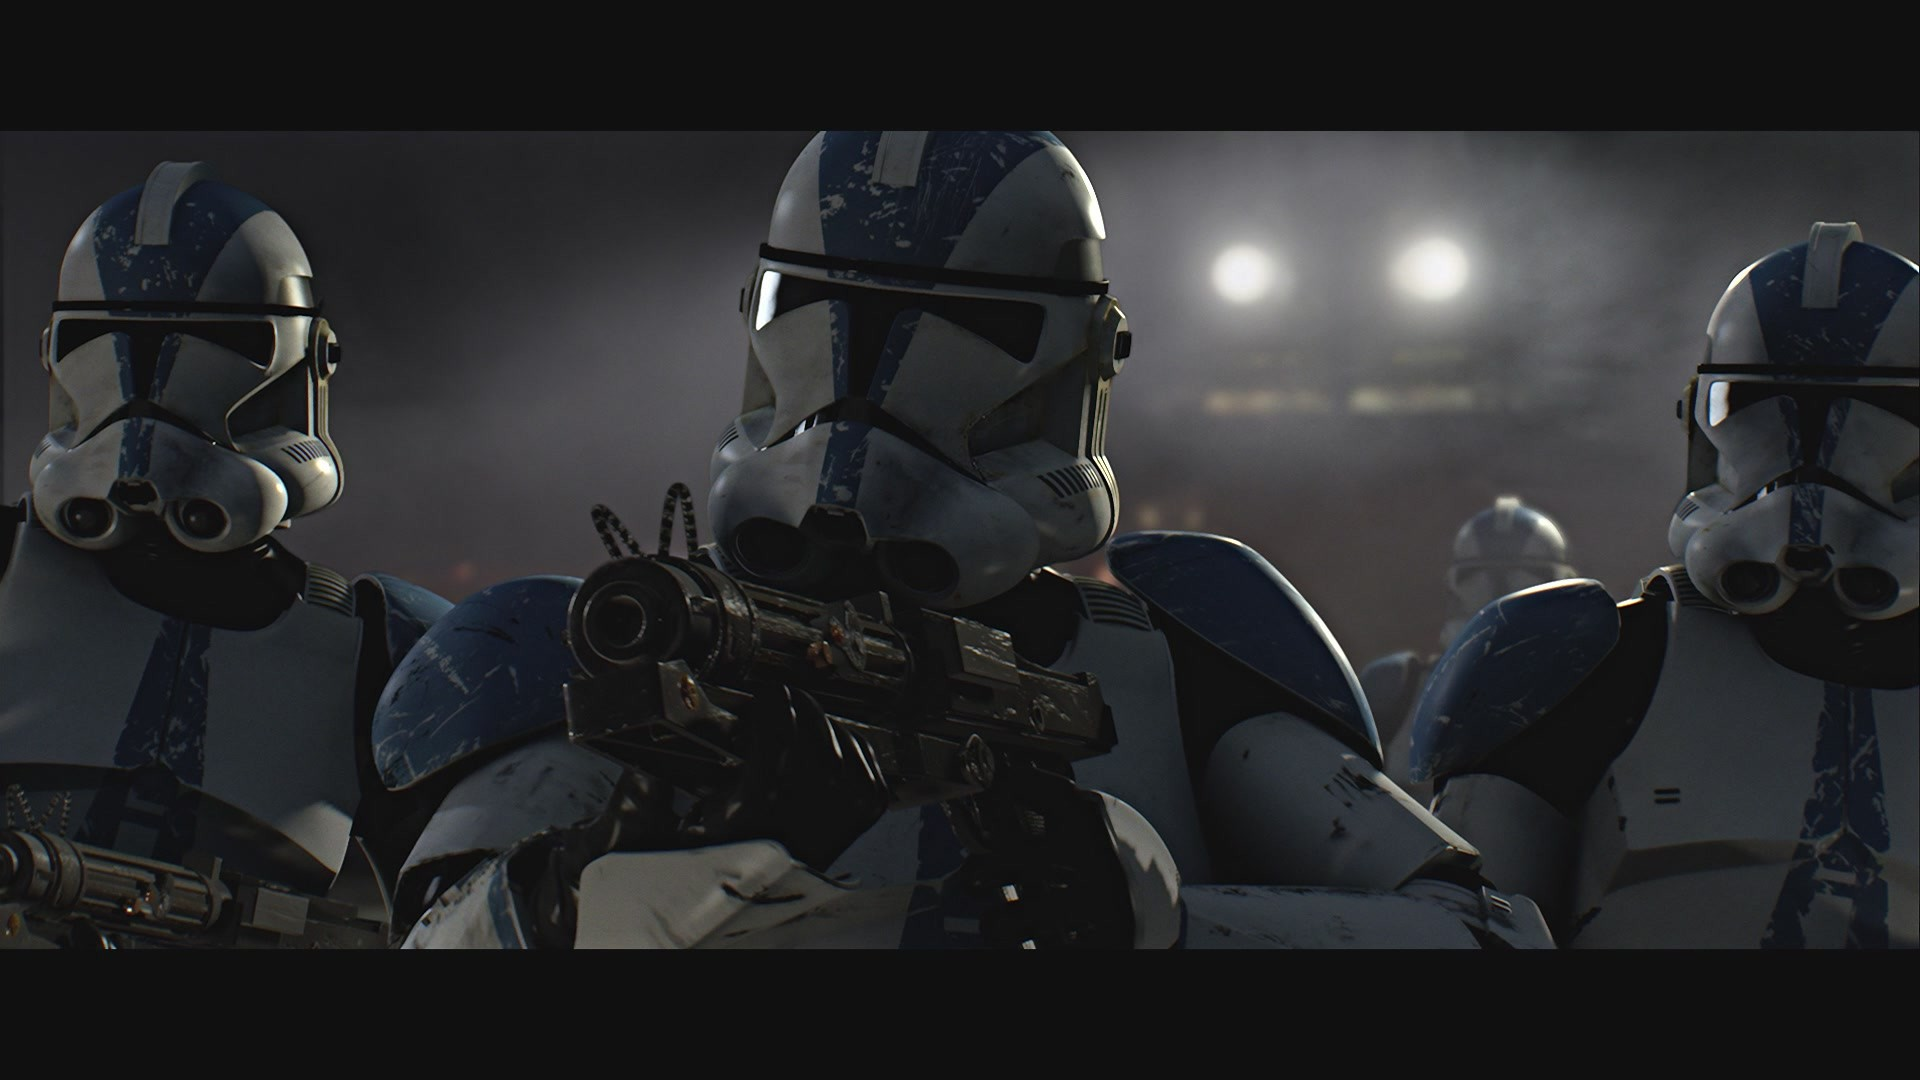 clone wars 501st wallpapers – photo #6